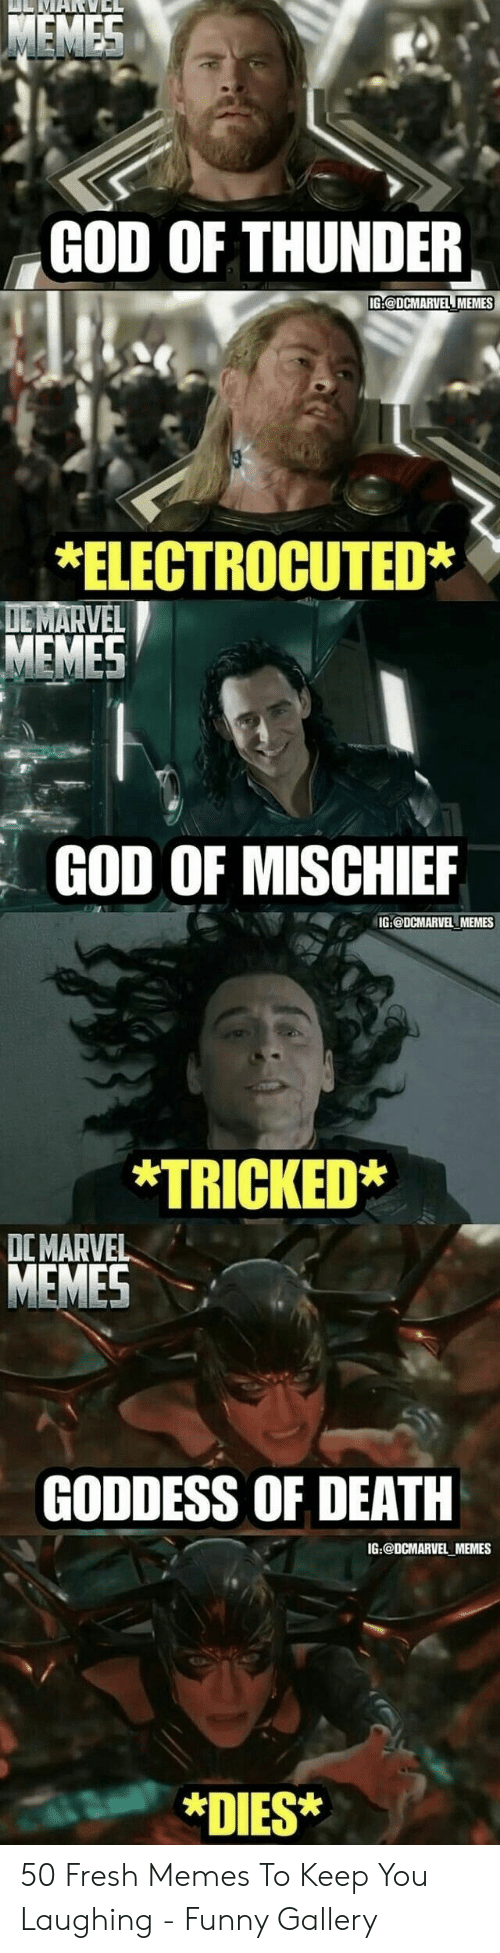 electrocuted: GOD OF THUNDER  IG:@DCMARVEL MEMES  *ELECTROCUTED*  MEMES  GOD OF MISCHIEF  IG:@DCMARVEL MEMES  *TRICKED*  DCMARVEL  GODDESS OF DEATH  IG:@DCMARVEL MEMES  *DIES* 50 Fresh Memes To Keep You Laughing - Funny Gallery